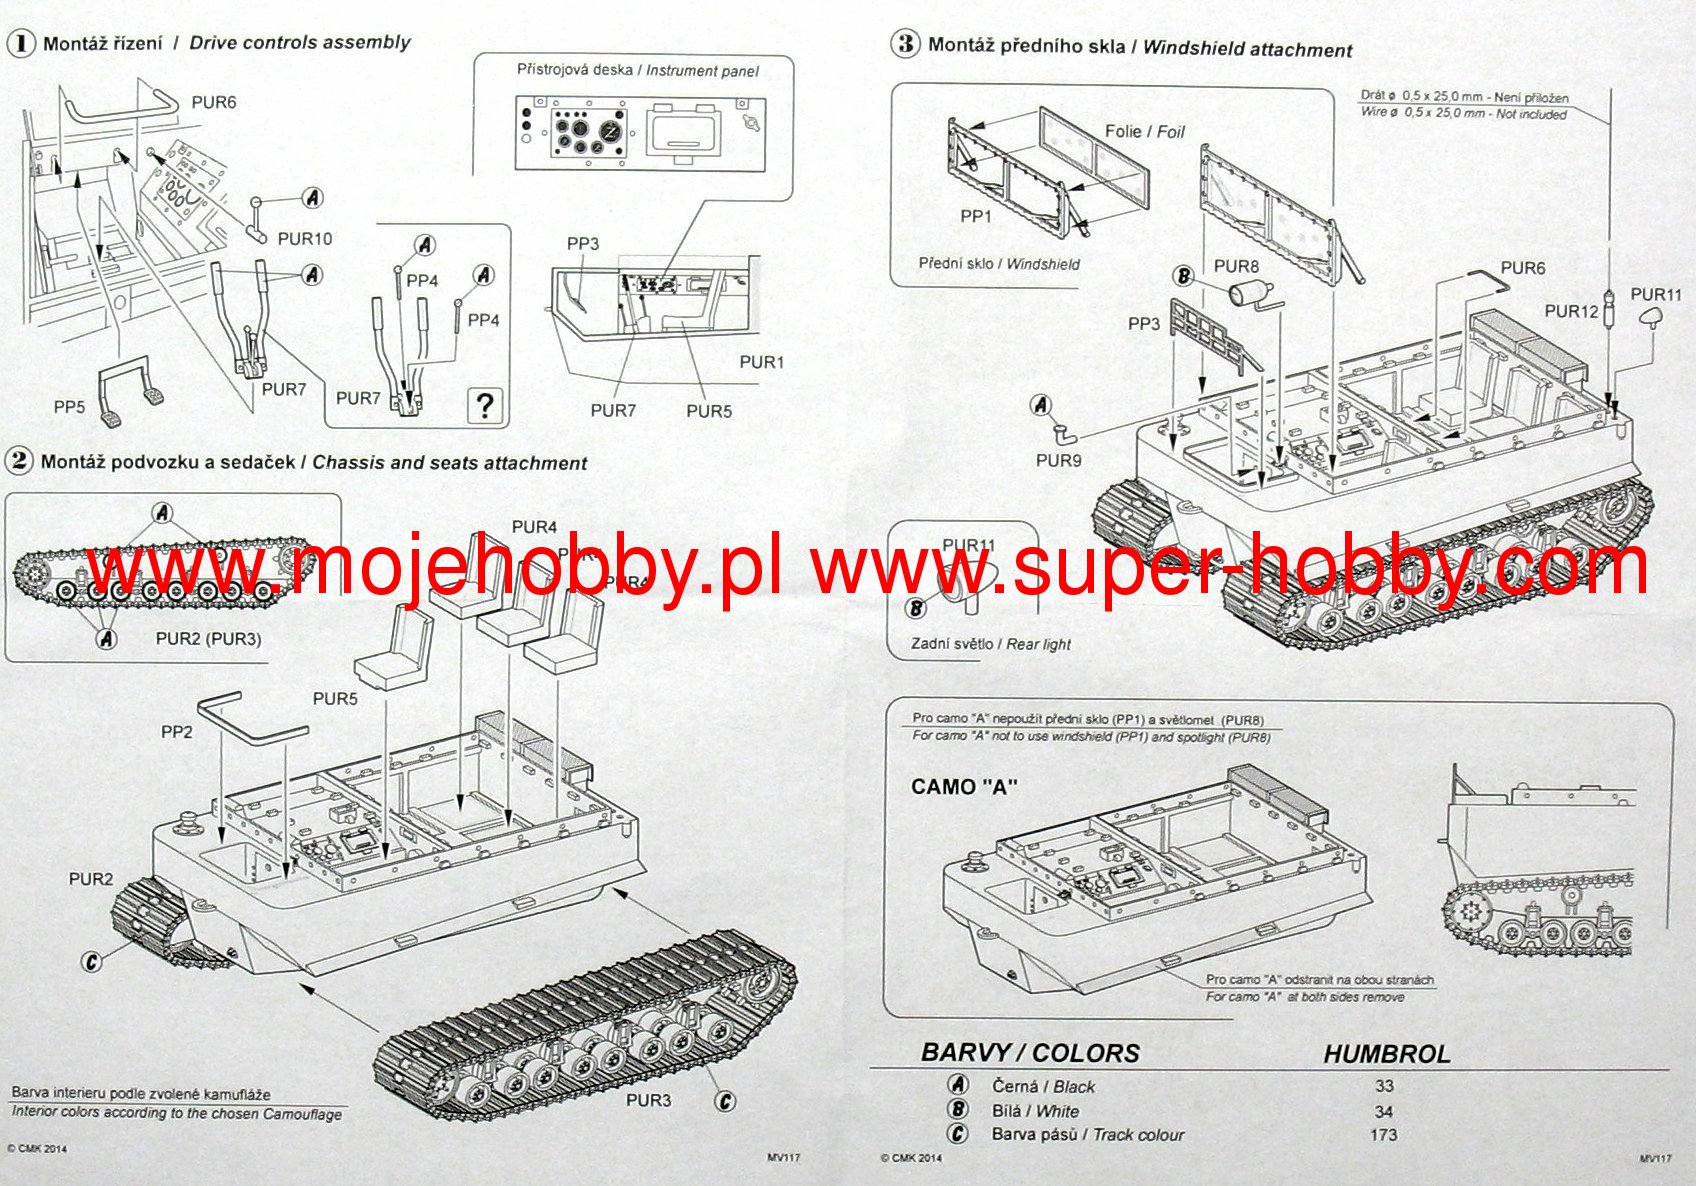 M29 Weasel Wire Diagrams Wiring Library Early Lighting And Fuel Diagram For Studebaker M29c Cargo Carrier Amphibian